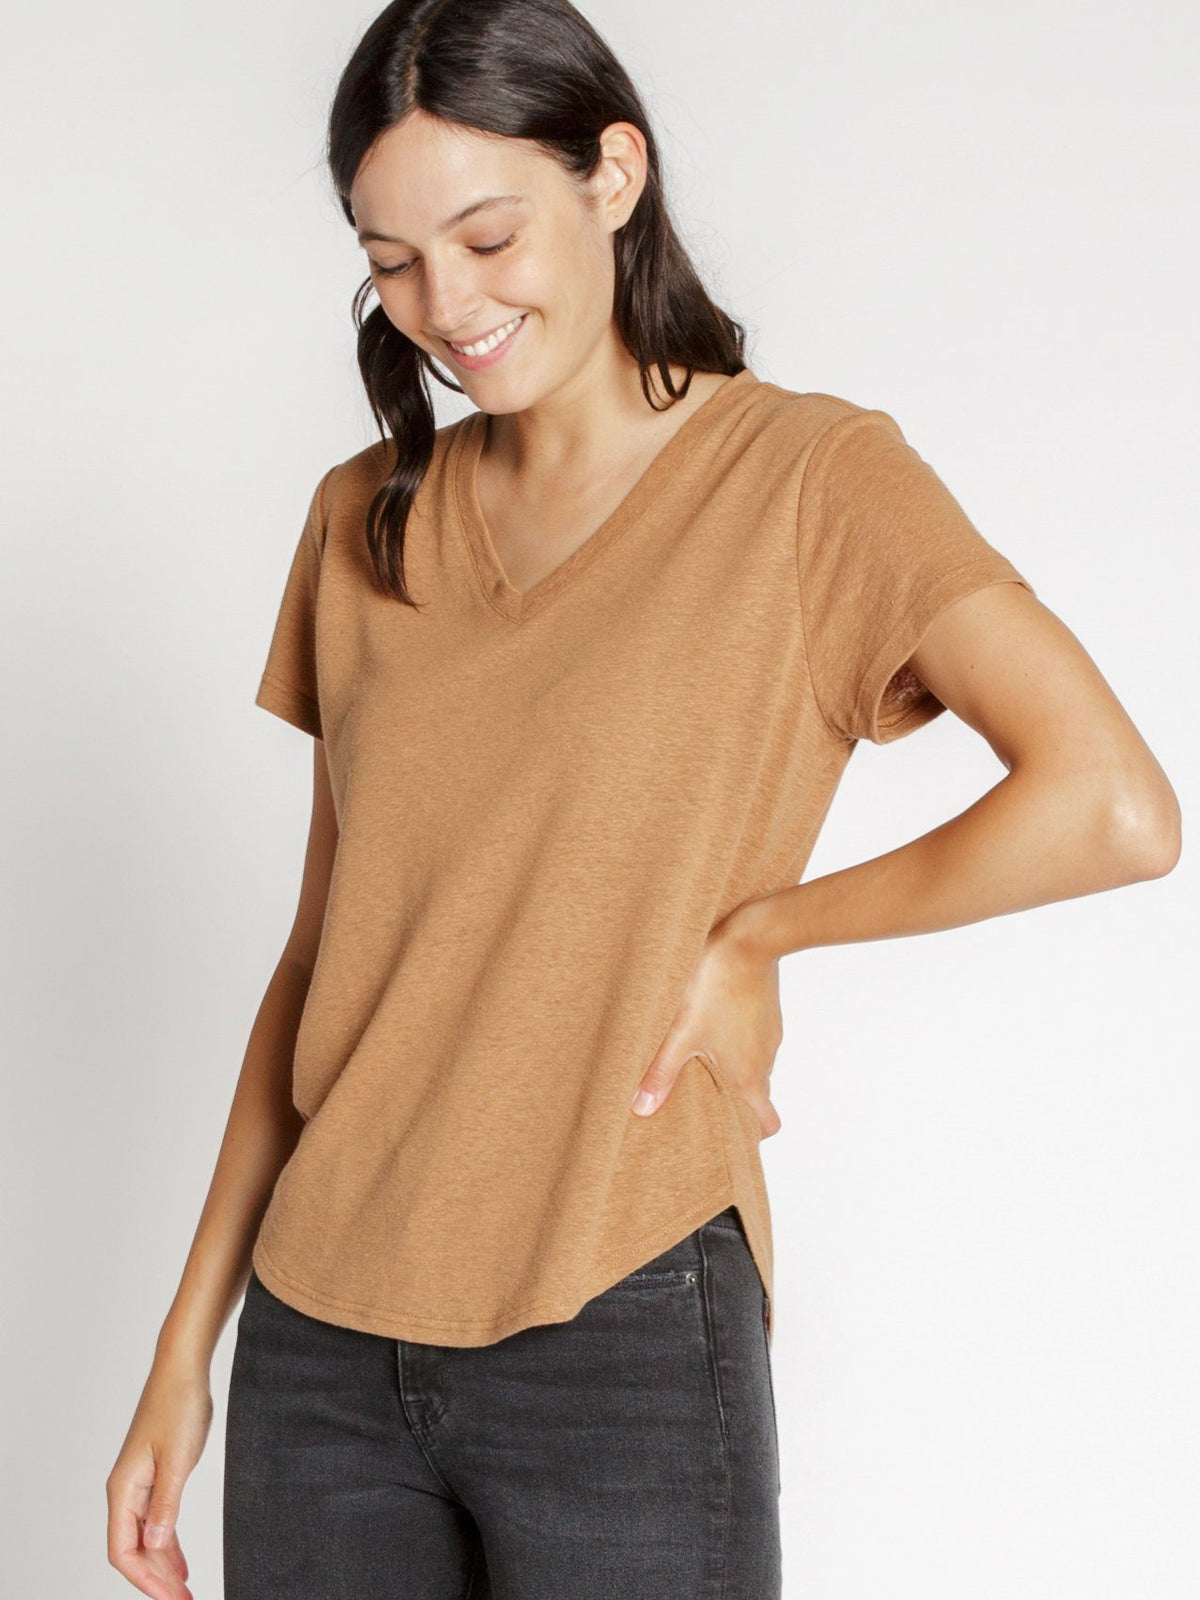 Delta Tee T-shirts Thread & Supply Cashew Brown S